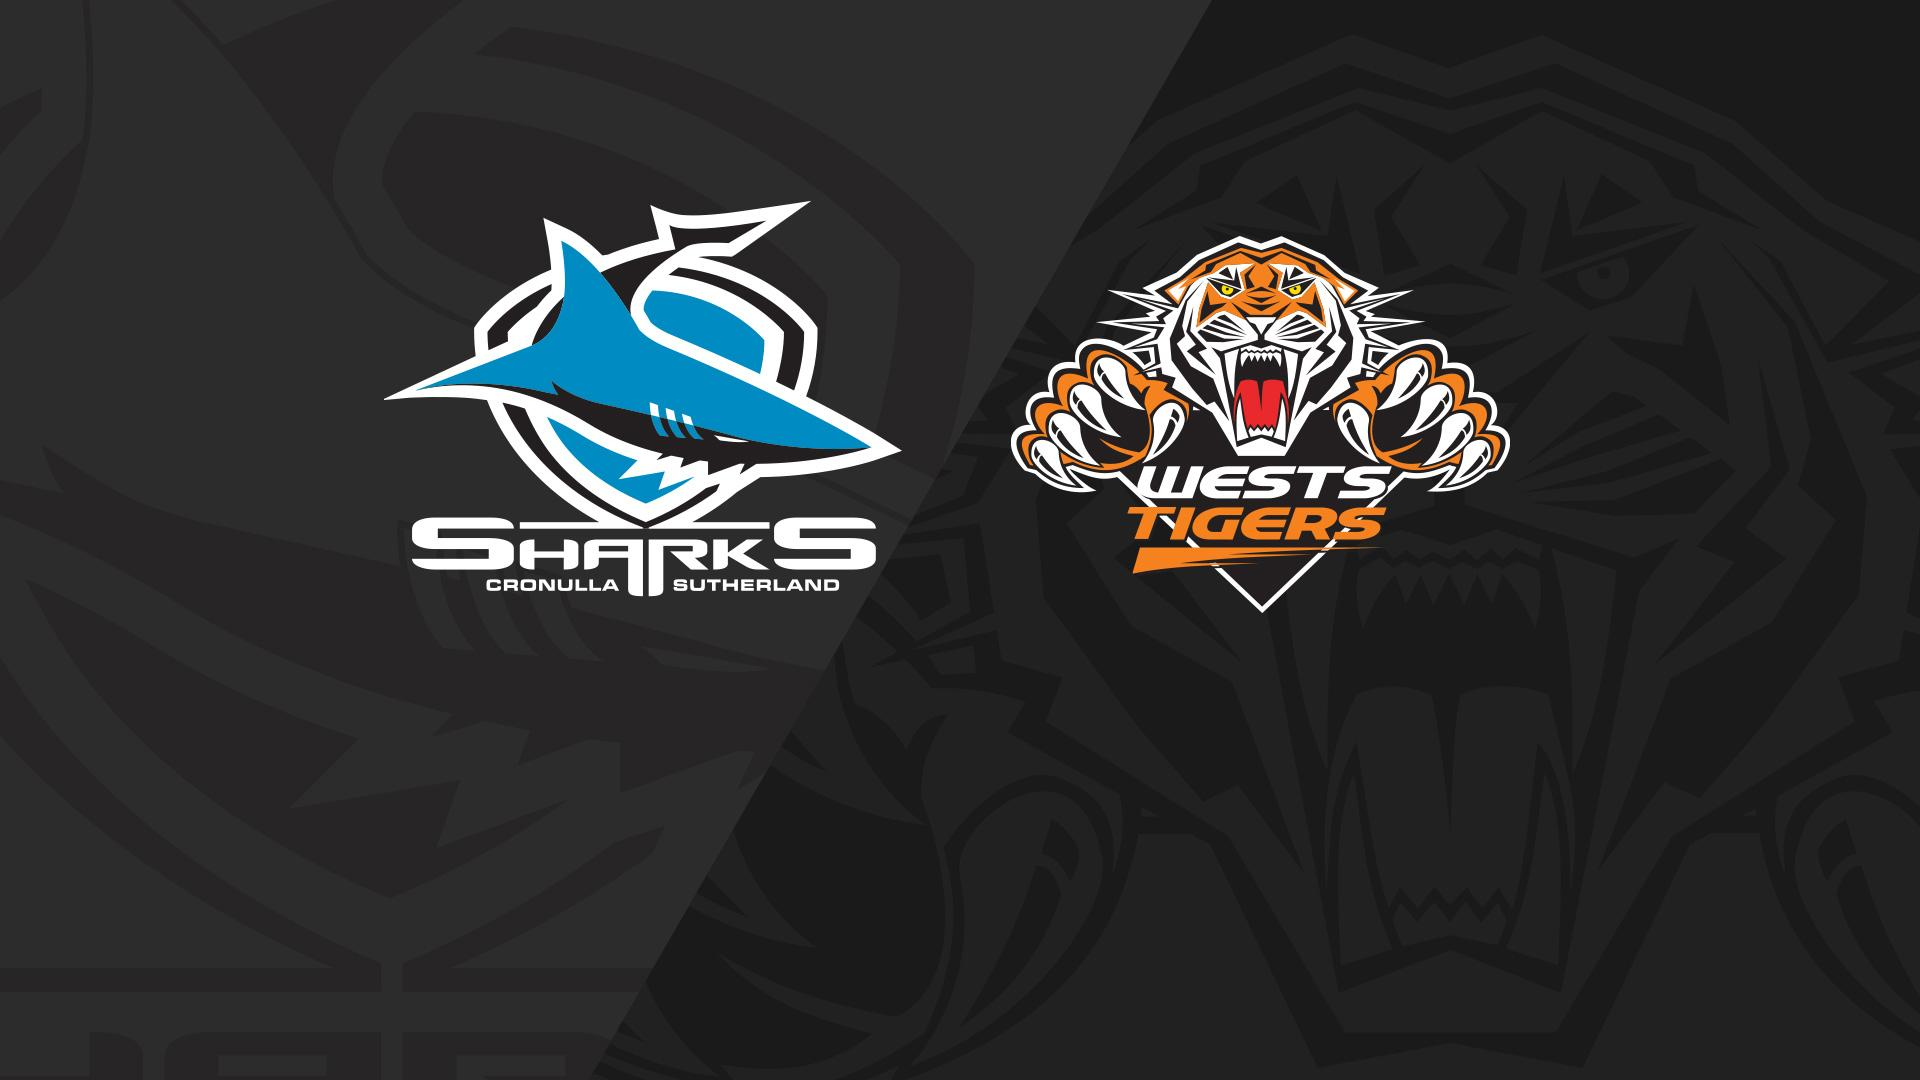 Full Match Replay: Sharks v Wests Tigers - Round 14, 2018